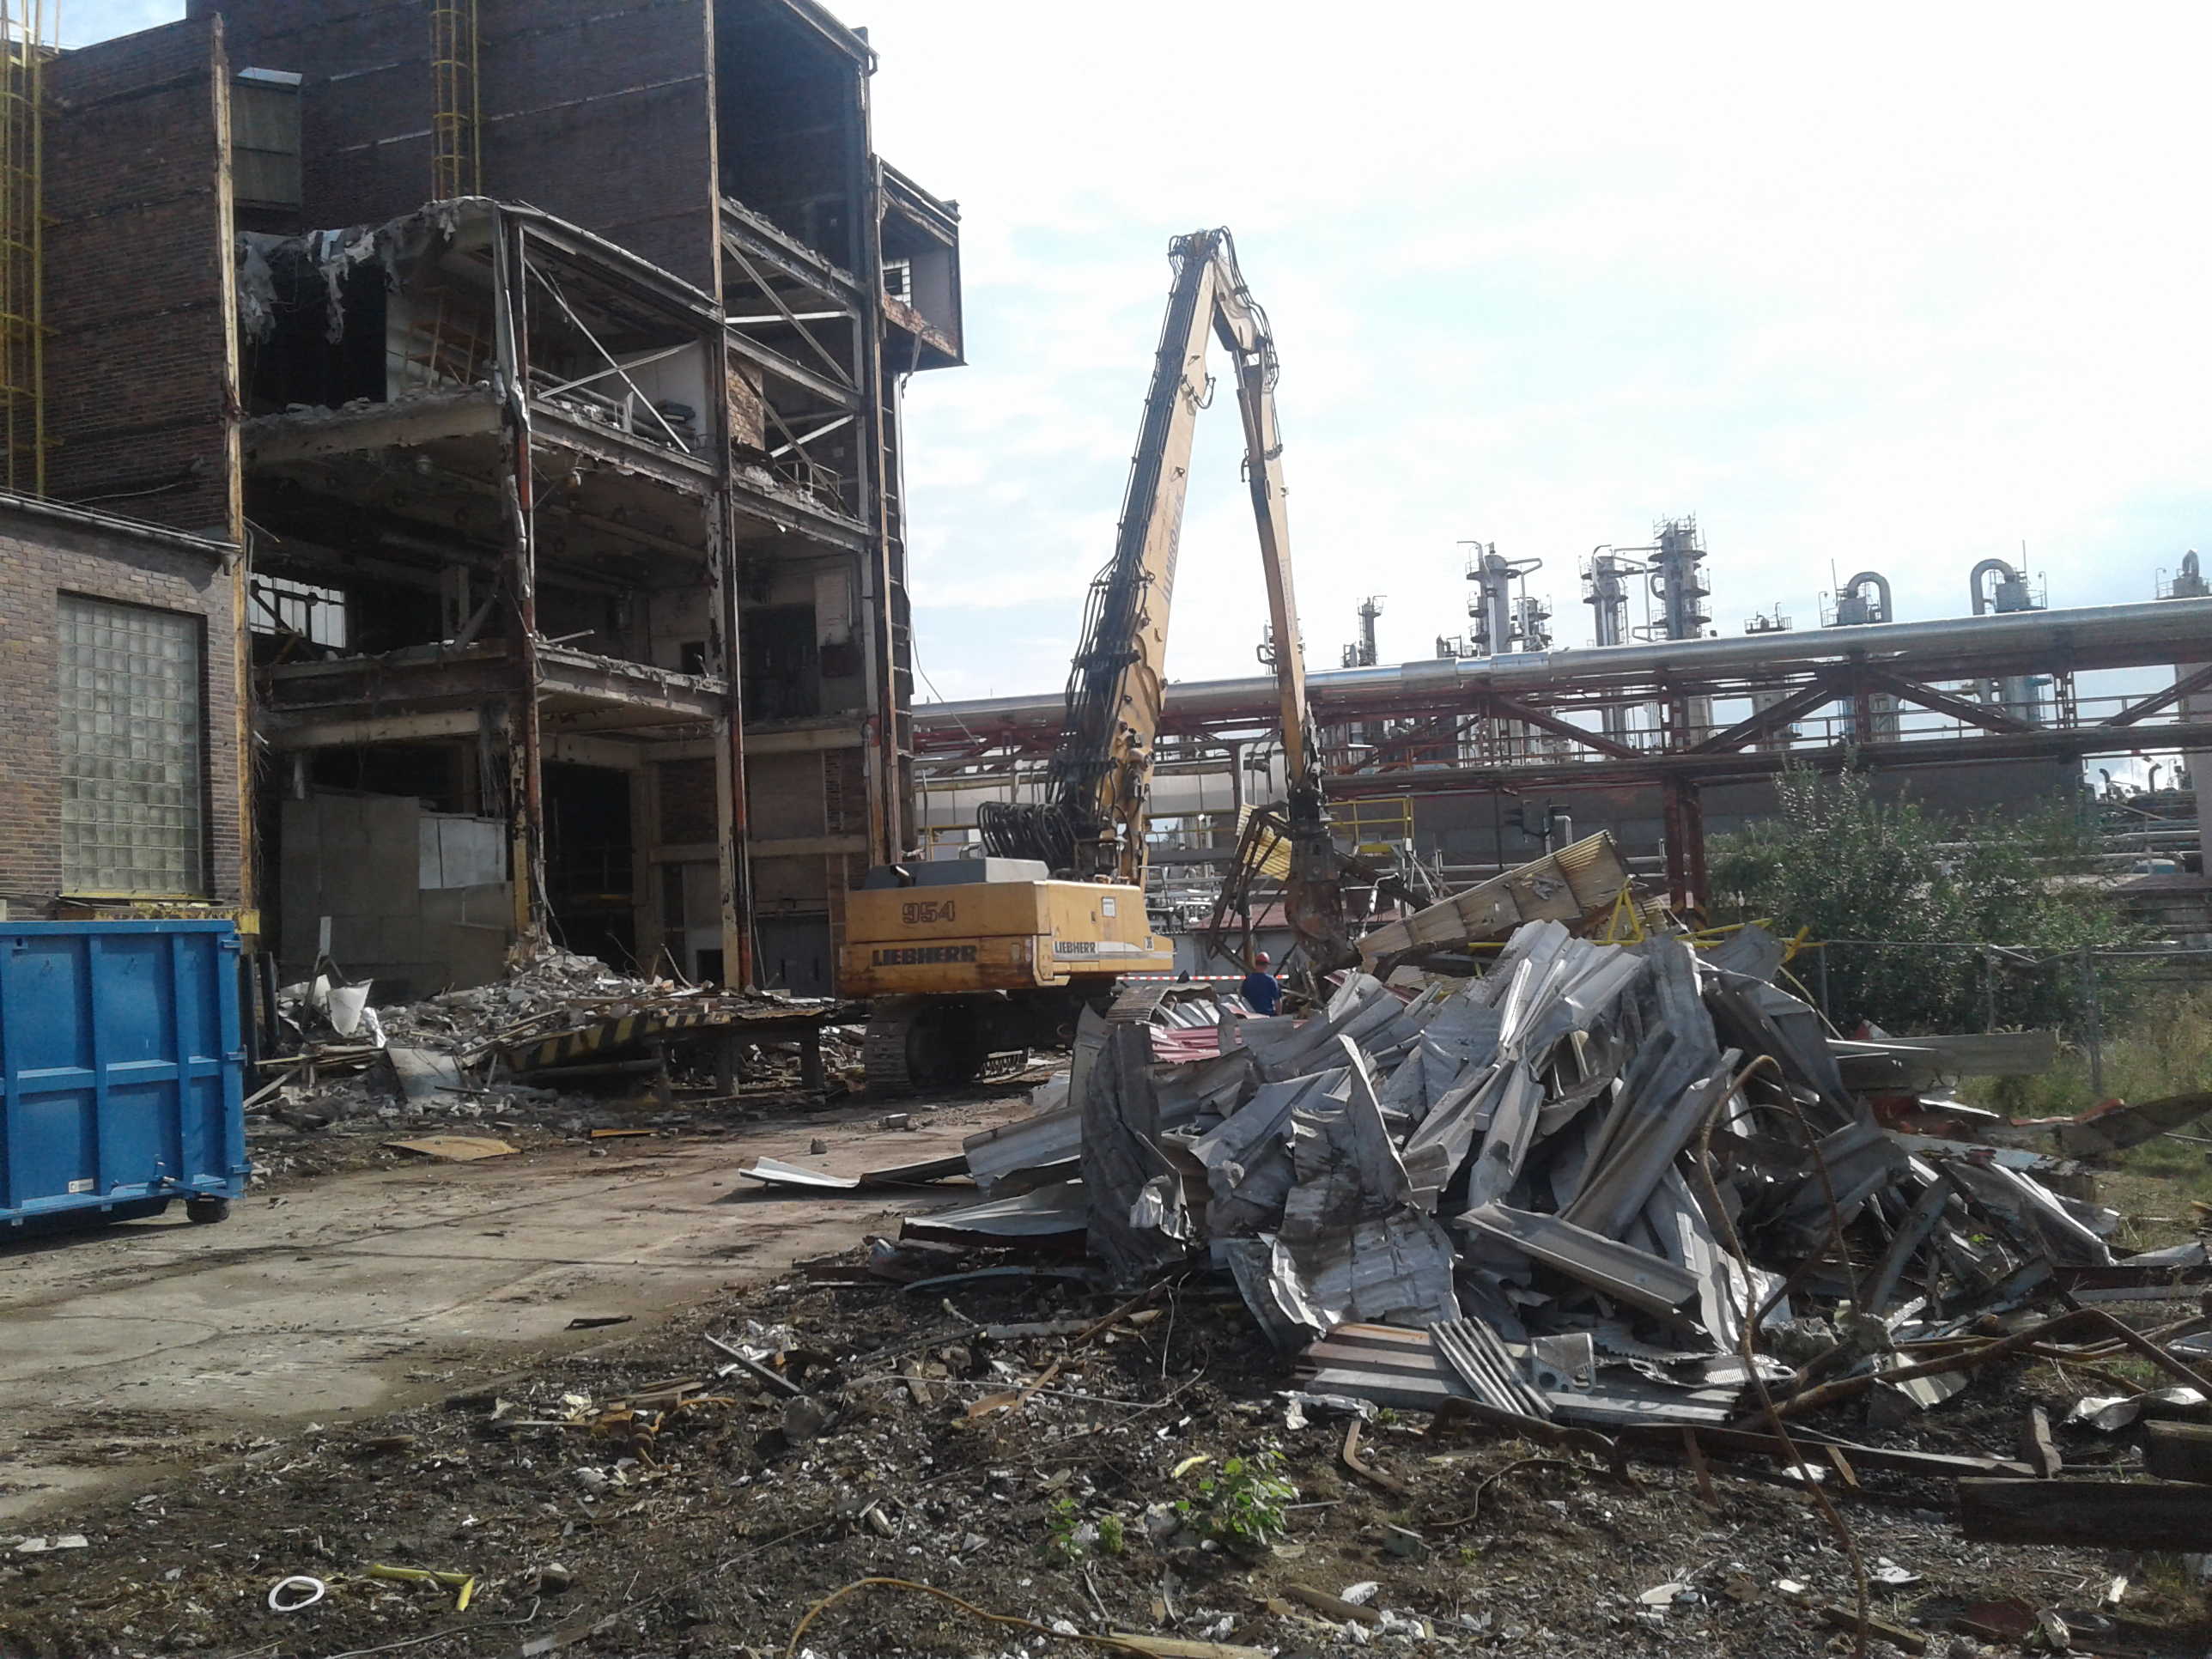 Demolition of buildings & subsequent landscaping